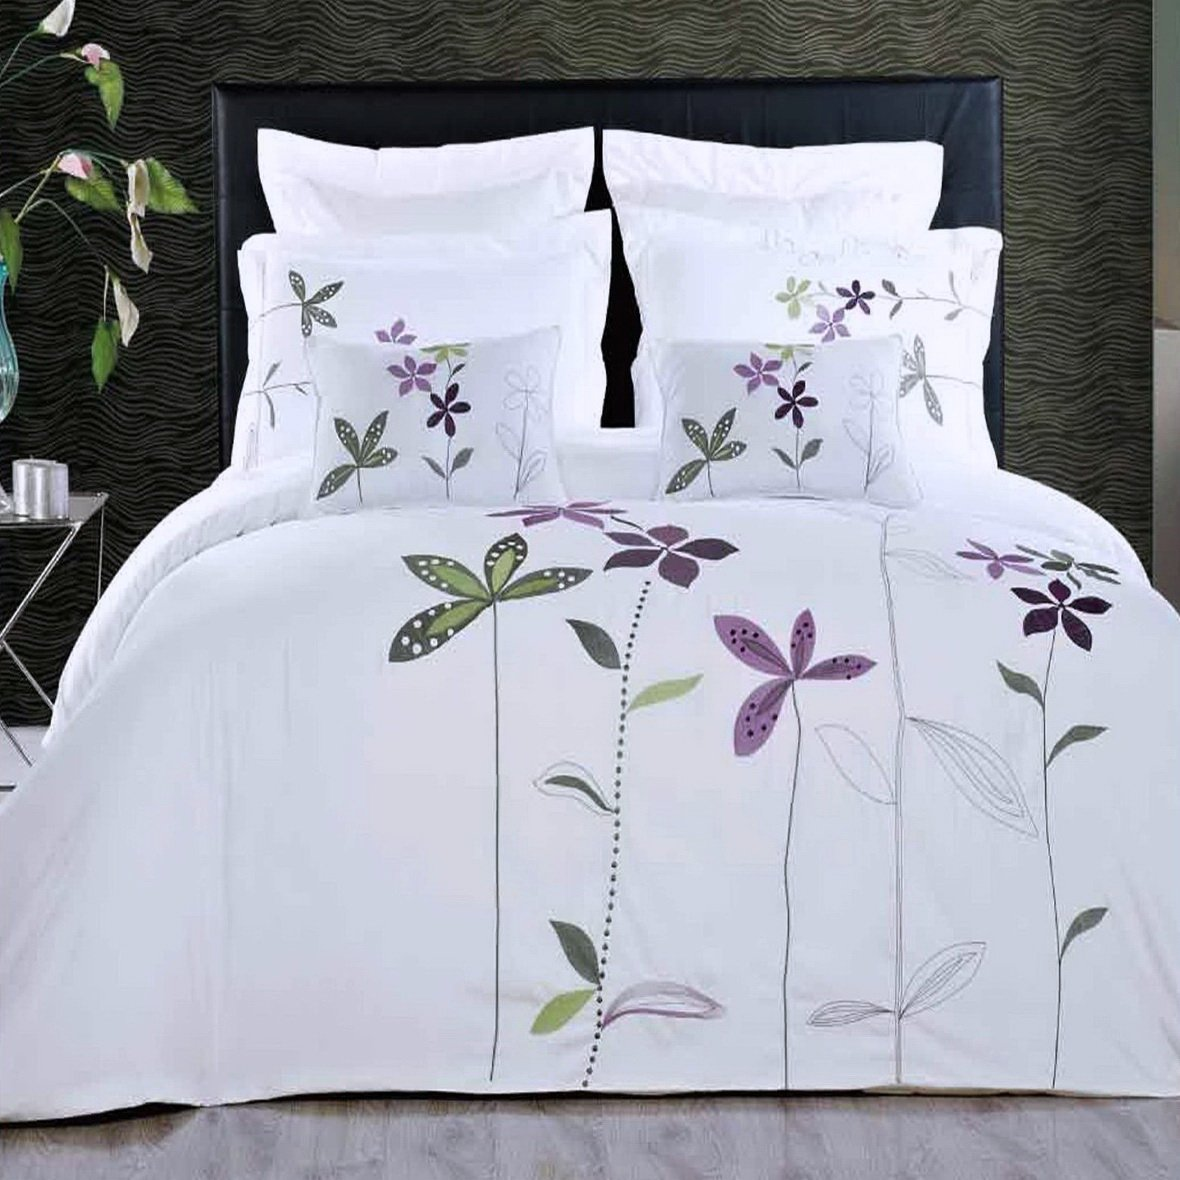 Duvet Cover White King Embroidered Floral Pattern Lavender Purple Flowers 5 Piece Lightweight Bedding and Pillows Pillowcases Set